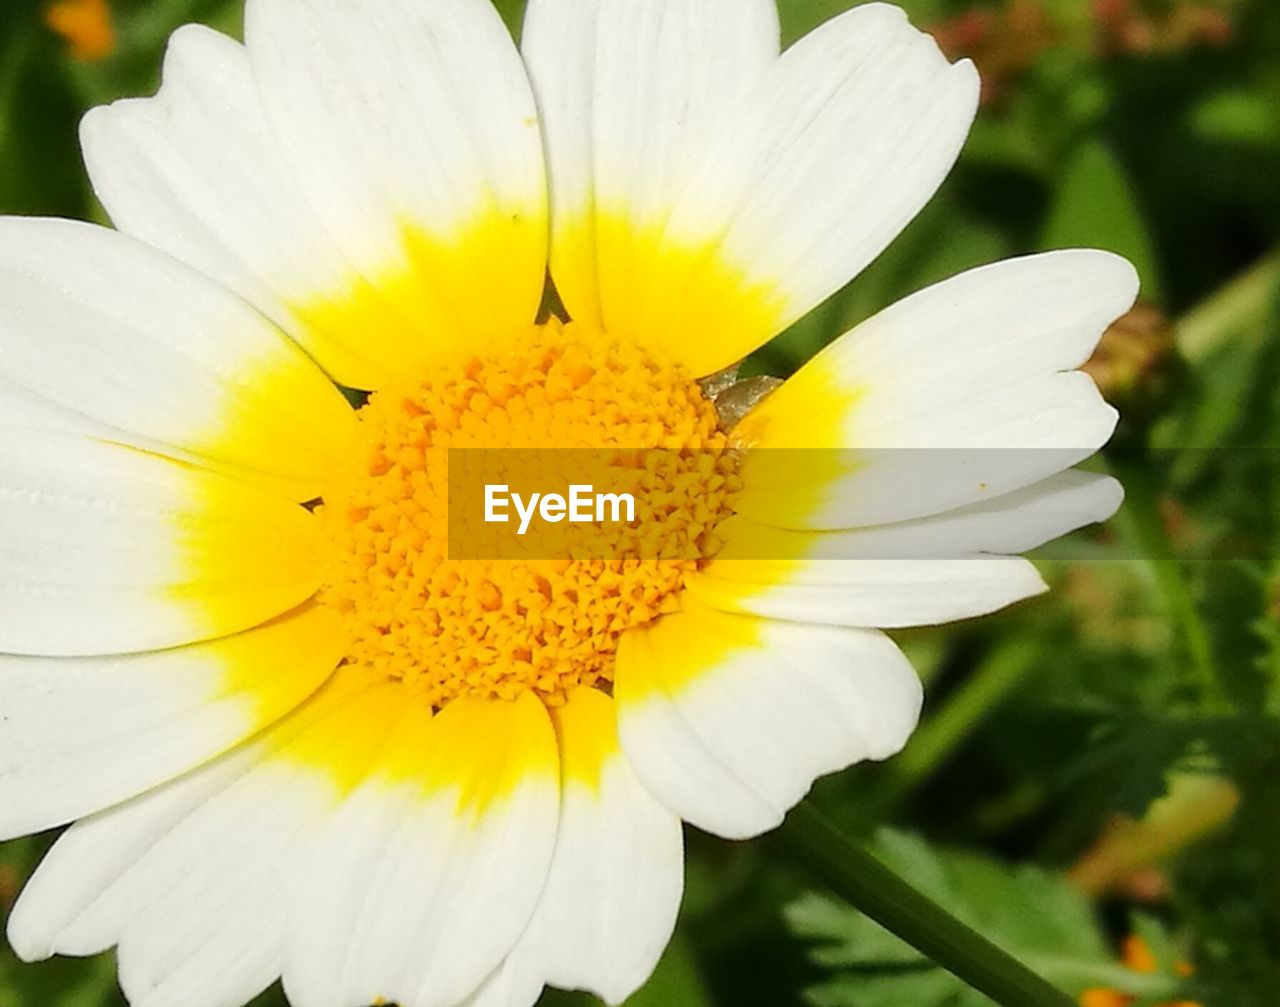 flower, petal, yellow, flower head, beauty in nature, nature, fragility, freshness, plant, pollen, white color, close-up, growth, outdoors, blooming, focus on foreground, day, no people, animal themes